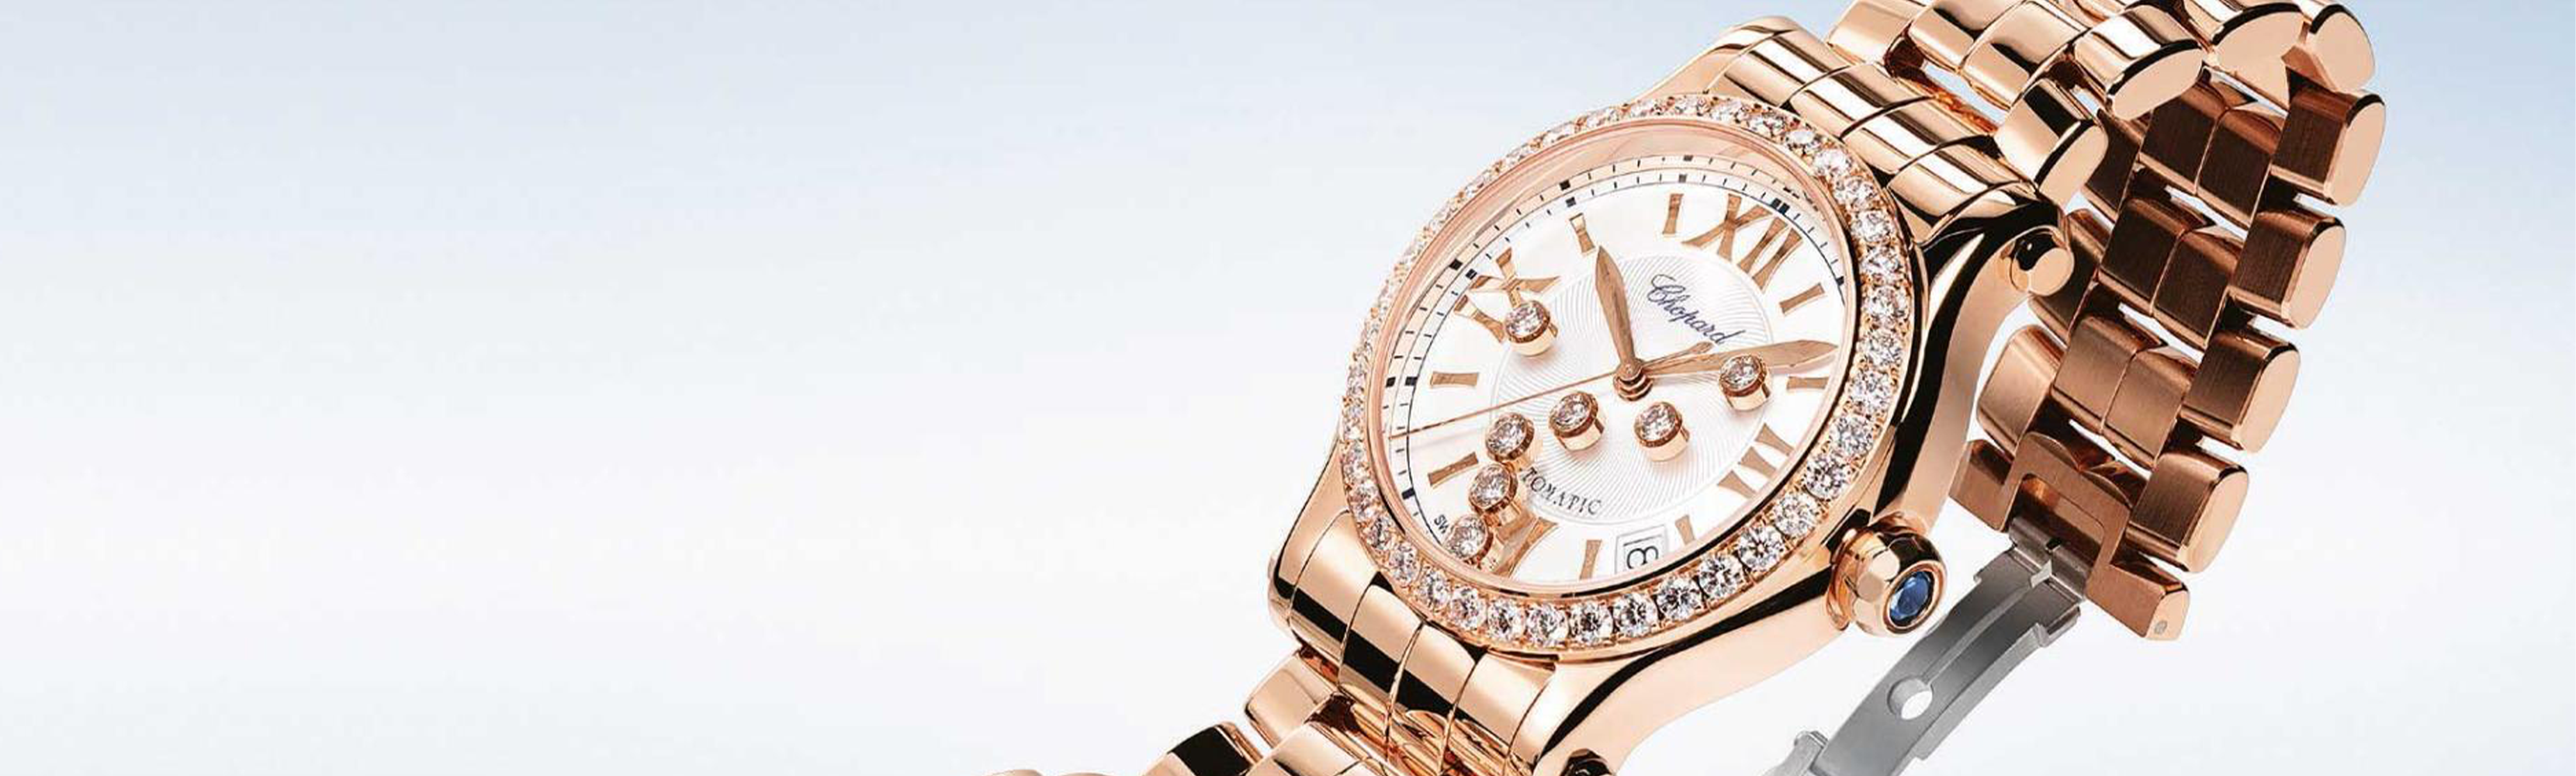 Chopard's Iconic Happy Sport Collection article hero image